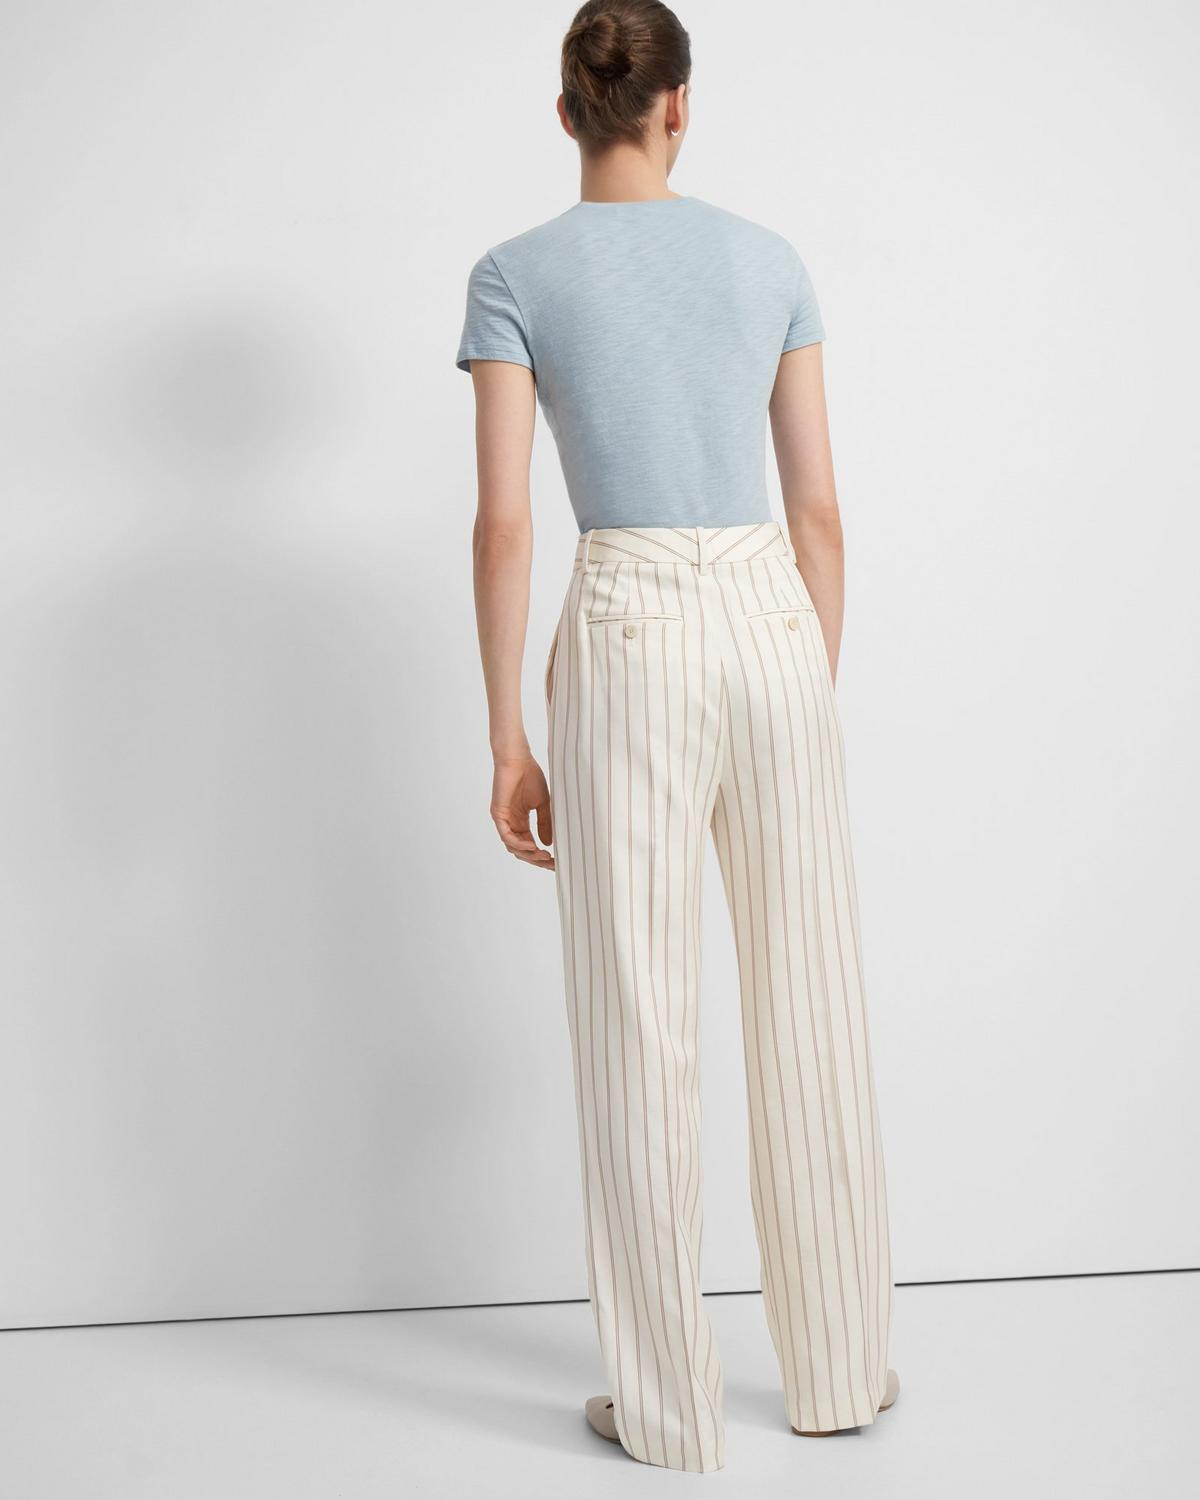 PLEAT TROUSER